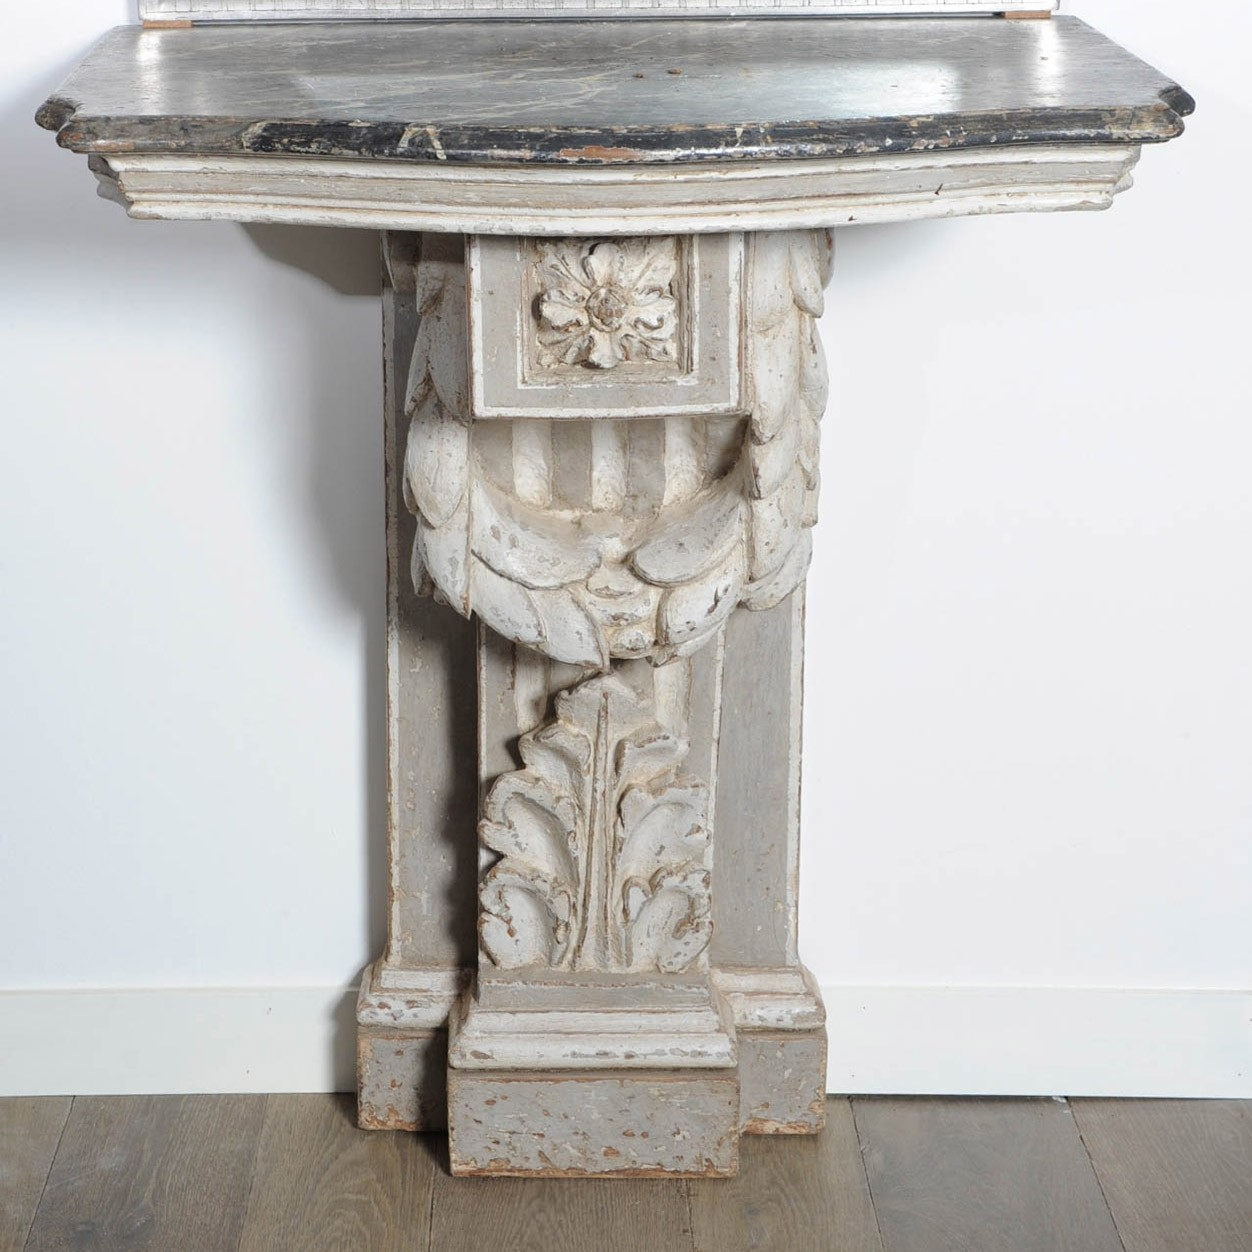 Neoclassical period console tables